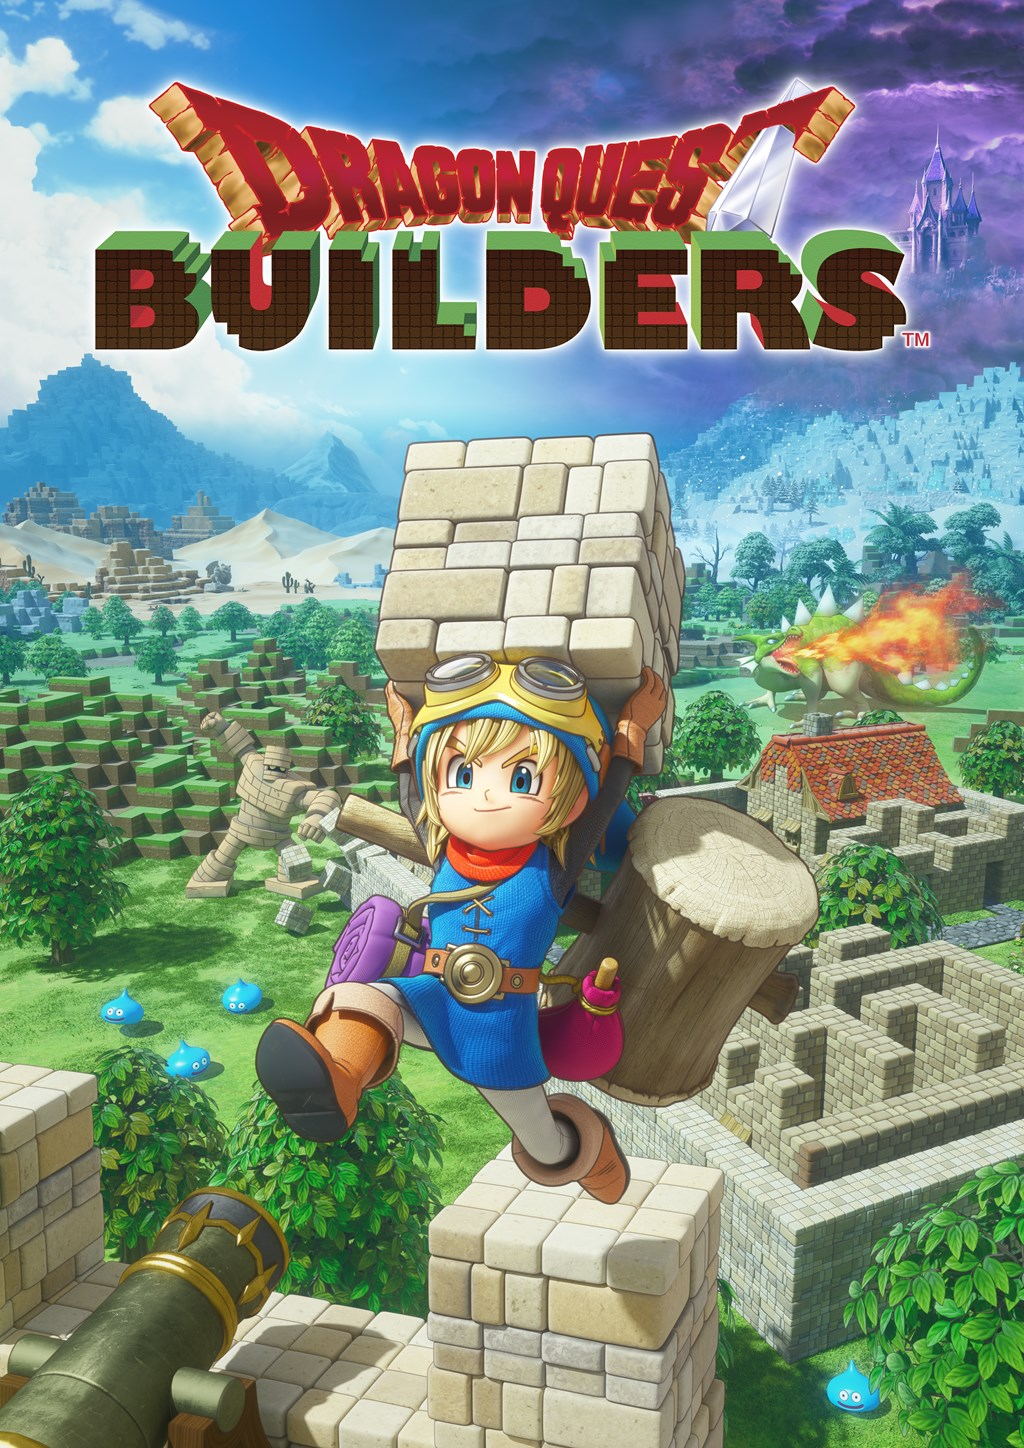 Dragon Quest Builders Is Coming To The Switch On February 9th Free 3 Way Animation Highly Rated Will Be Making Its Nintendo If Youre Chomping At Bit Play It Right Now